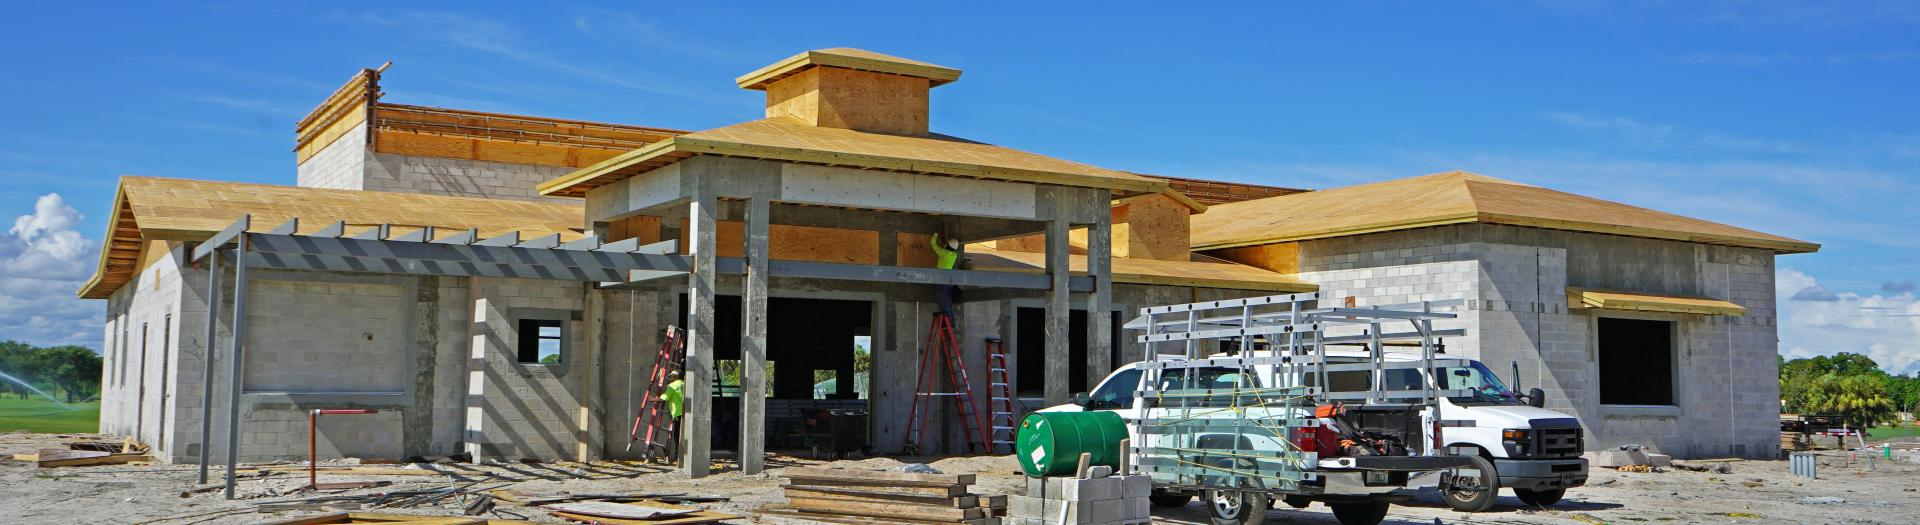 Construction on Front Clubhouse at Sailfish Sands